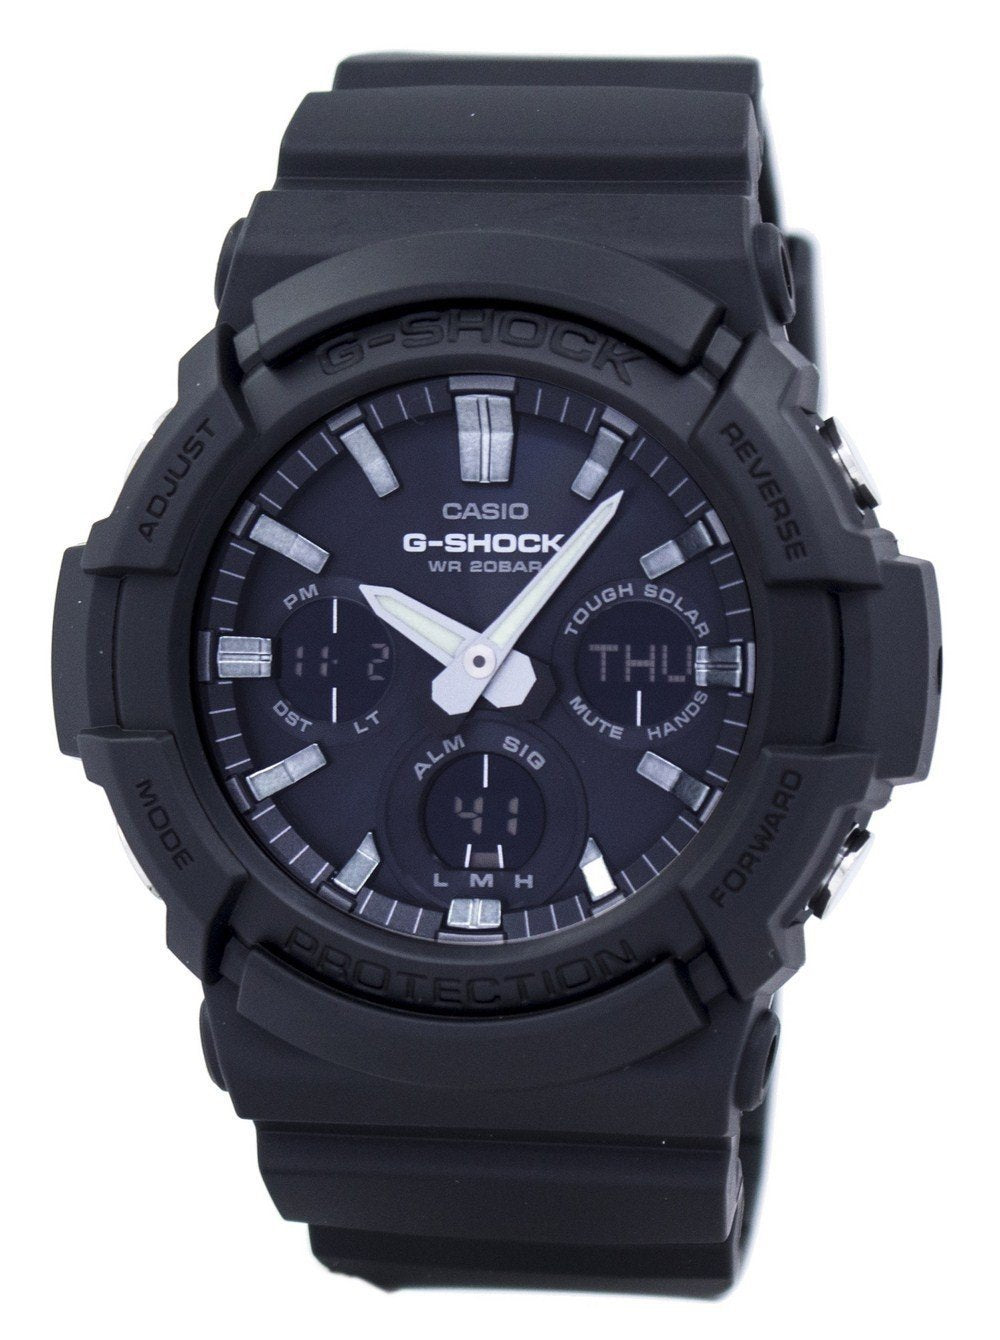 Casio G-Shock Tough Solar Shock Resistant 200M GAS-100B-1A Men's Watch